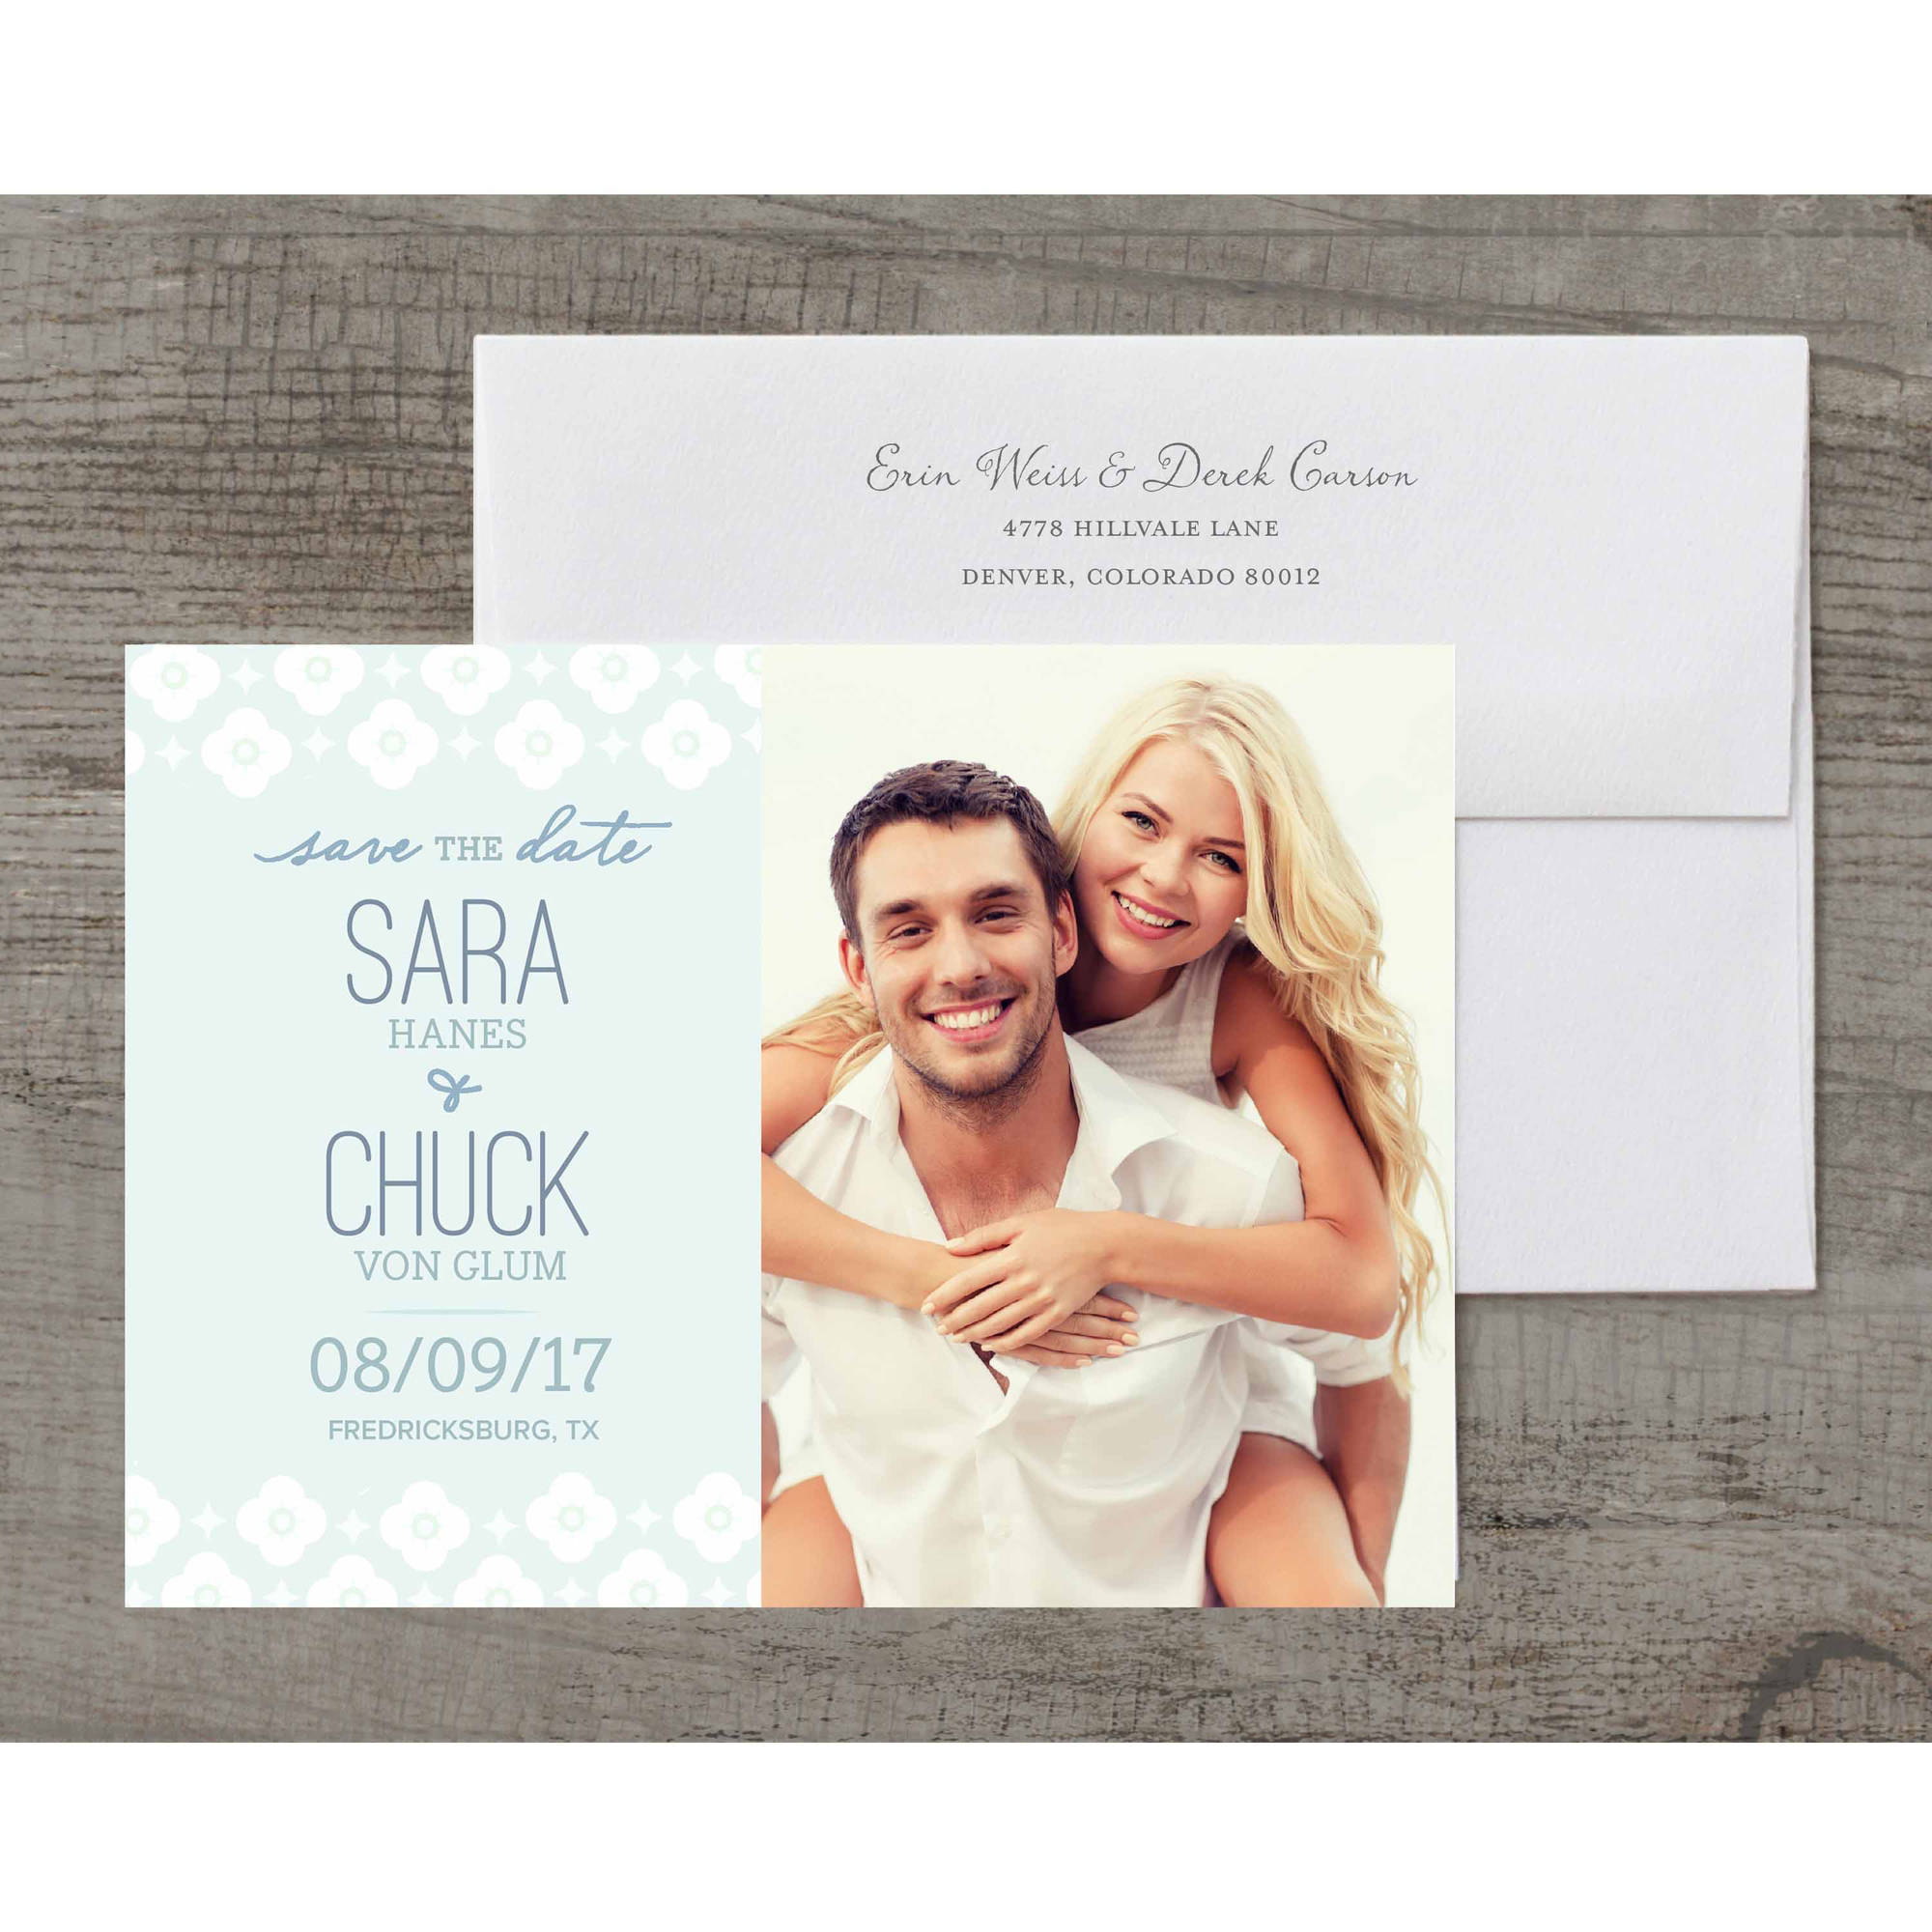 Flowers in Bloom Deluxe Save the Date